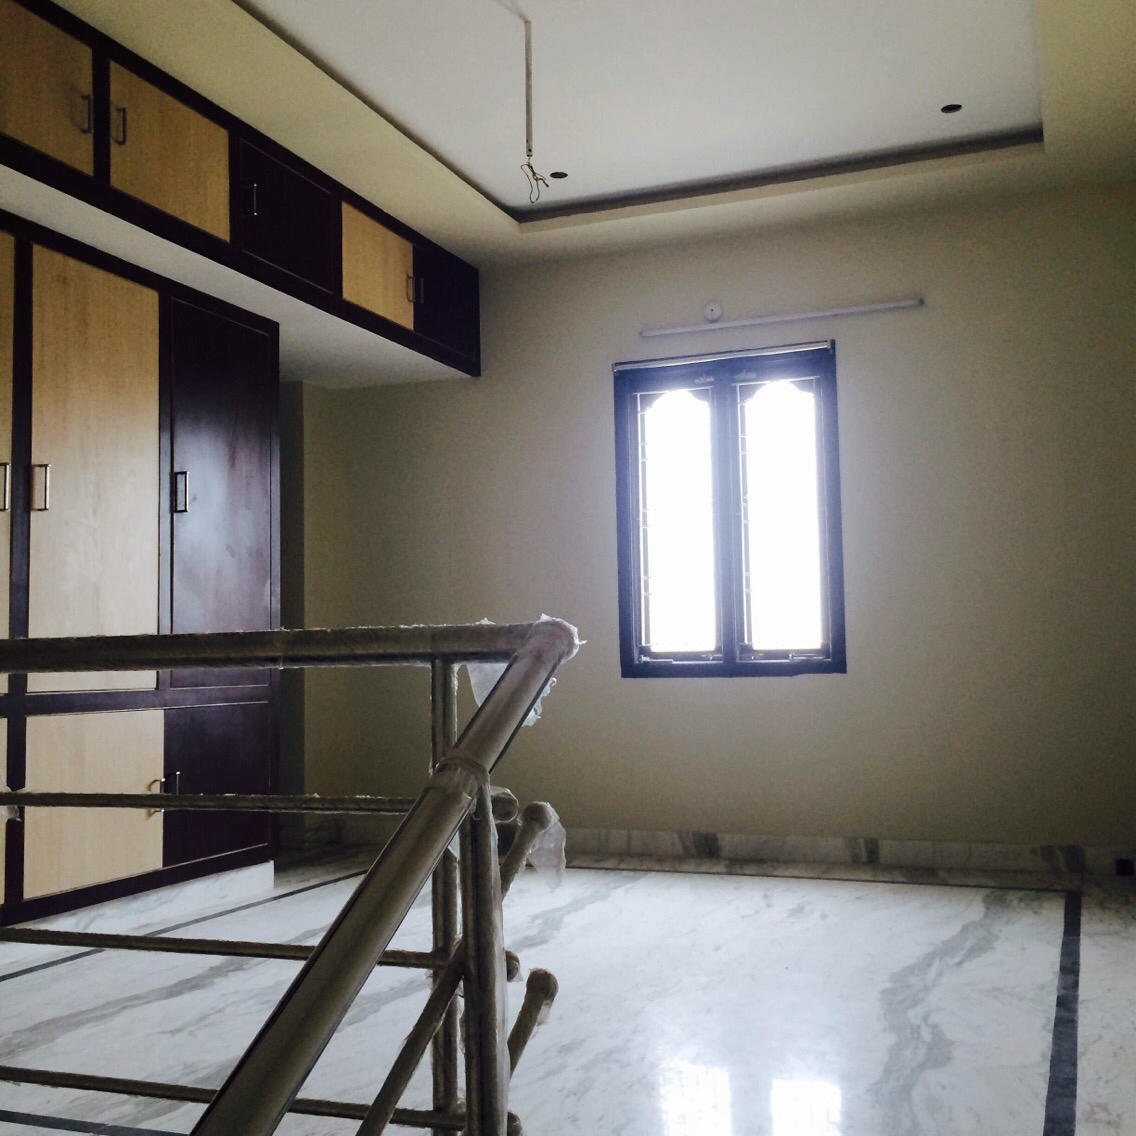 2 BHK 2400 sq feet independent bungalow – house garden. Semi furnished, at